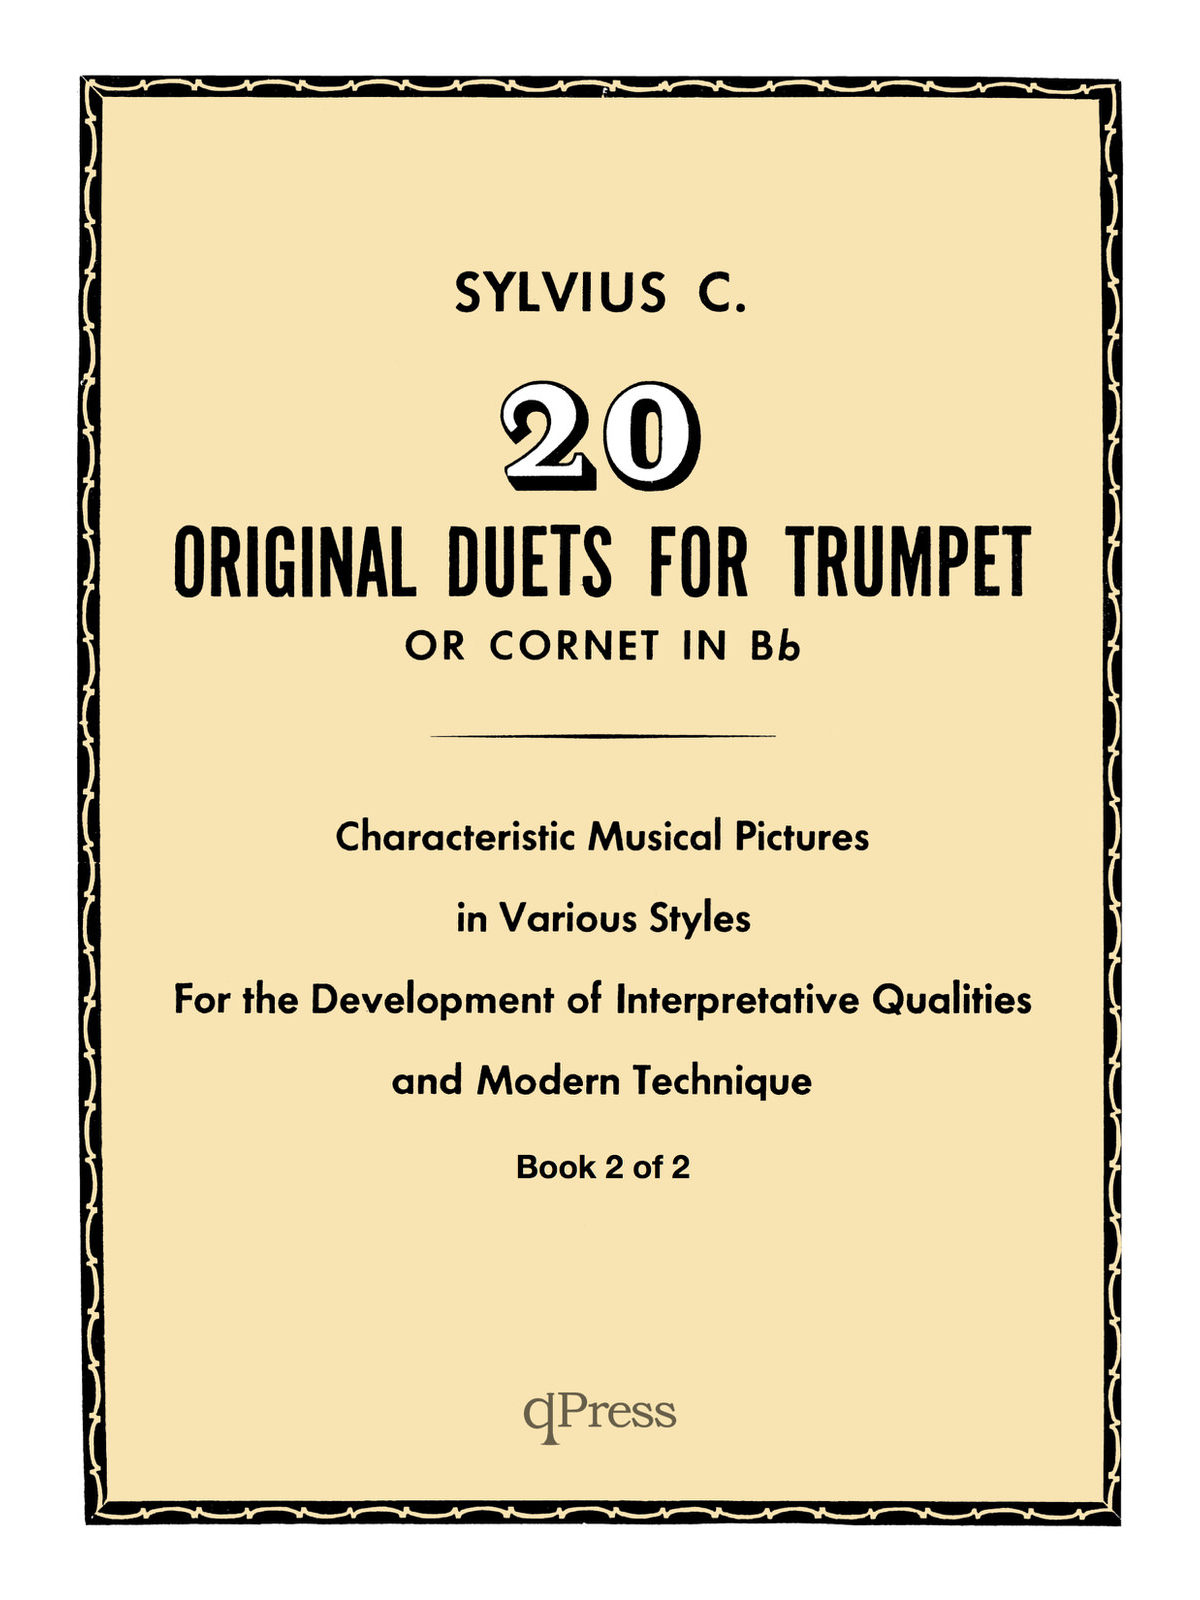 Clean Coscia, Sylvius 20 Original Duets for Trumpet or Cornet Book 2 5